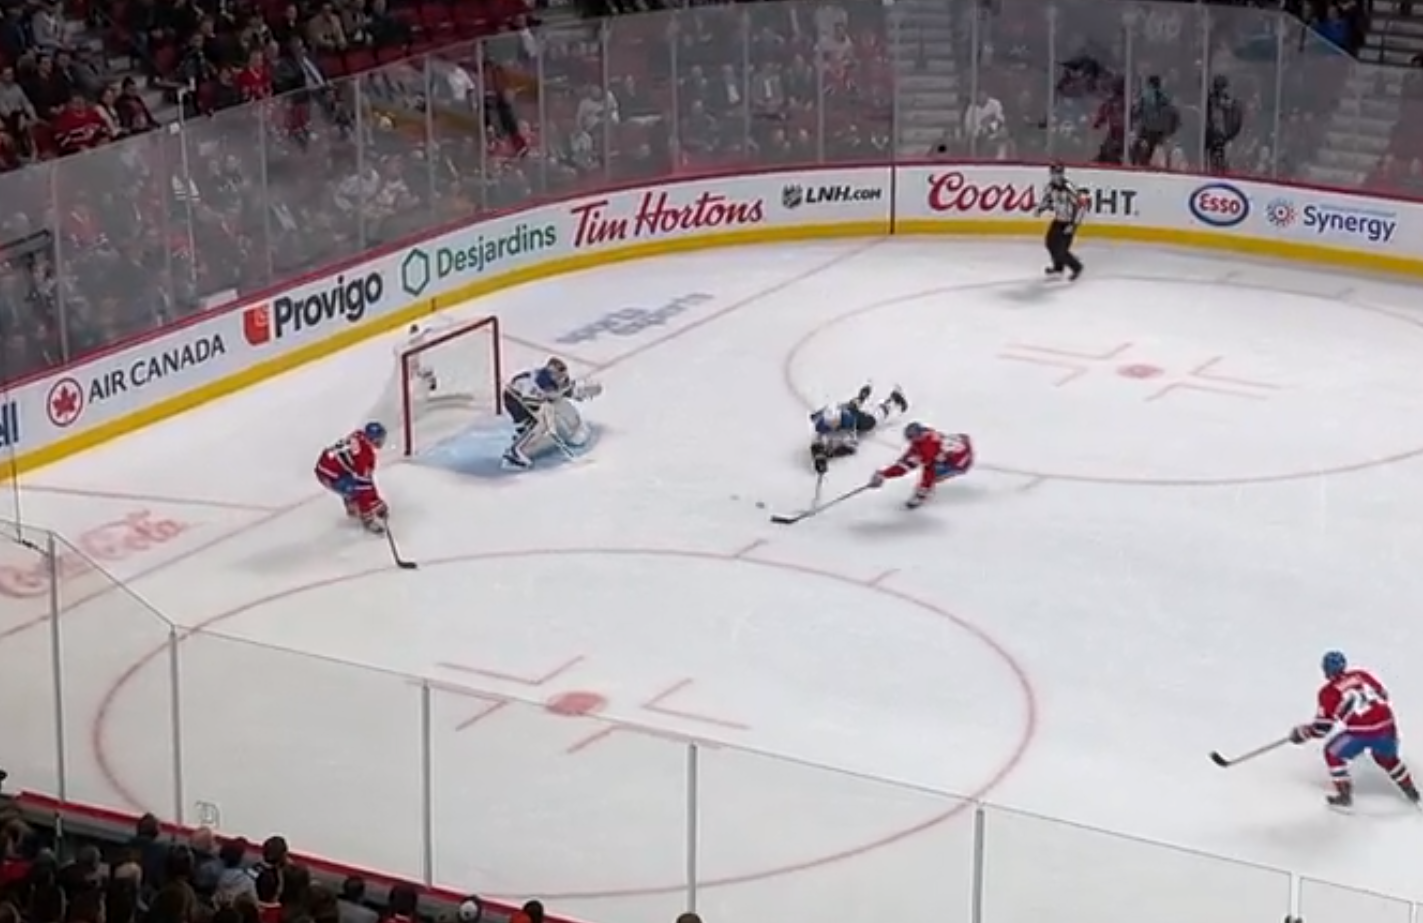 The Blues found a new heartbreaking way to lose